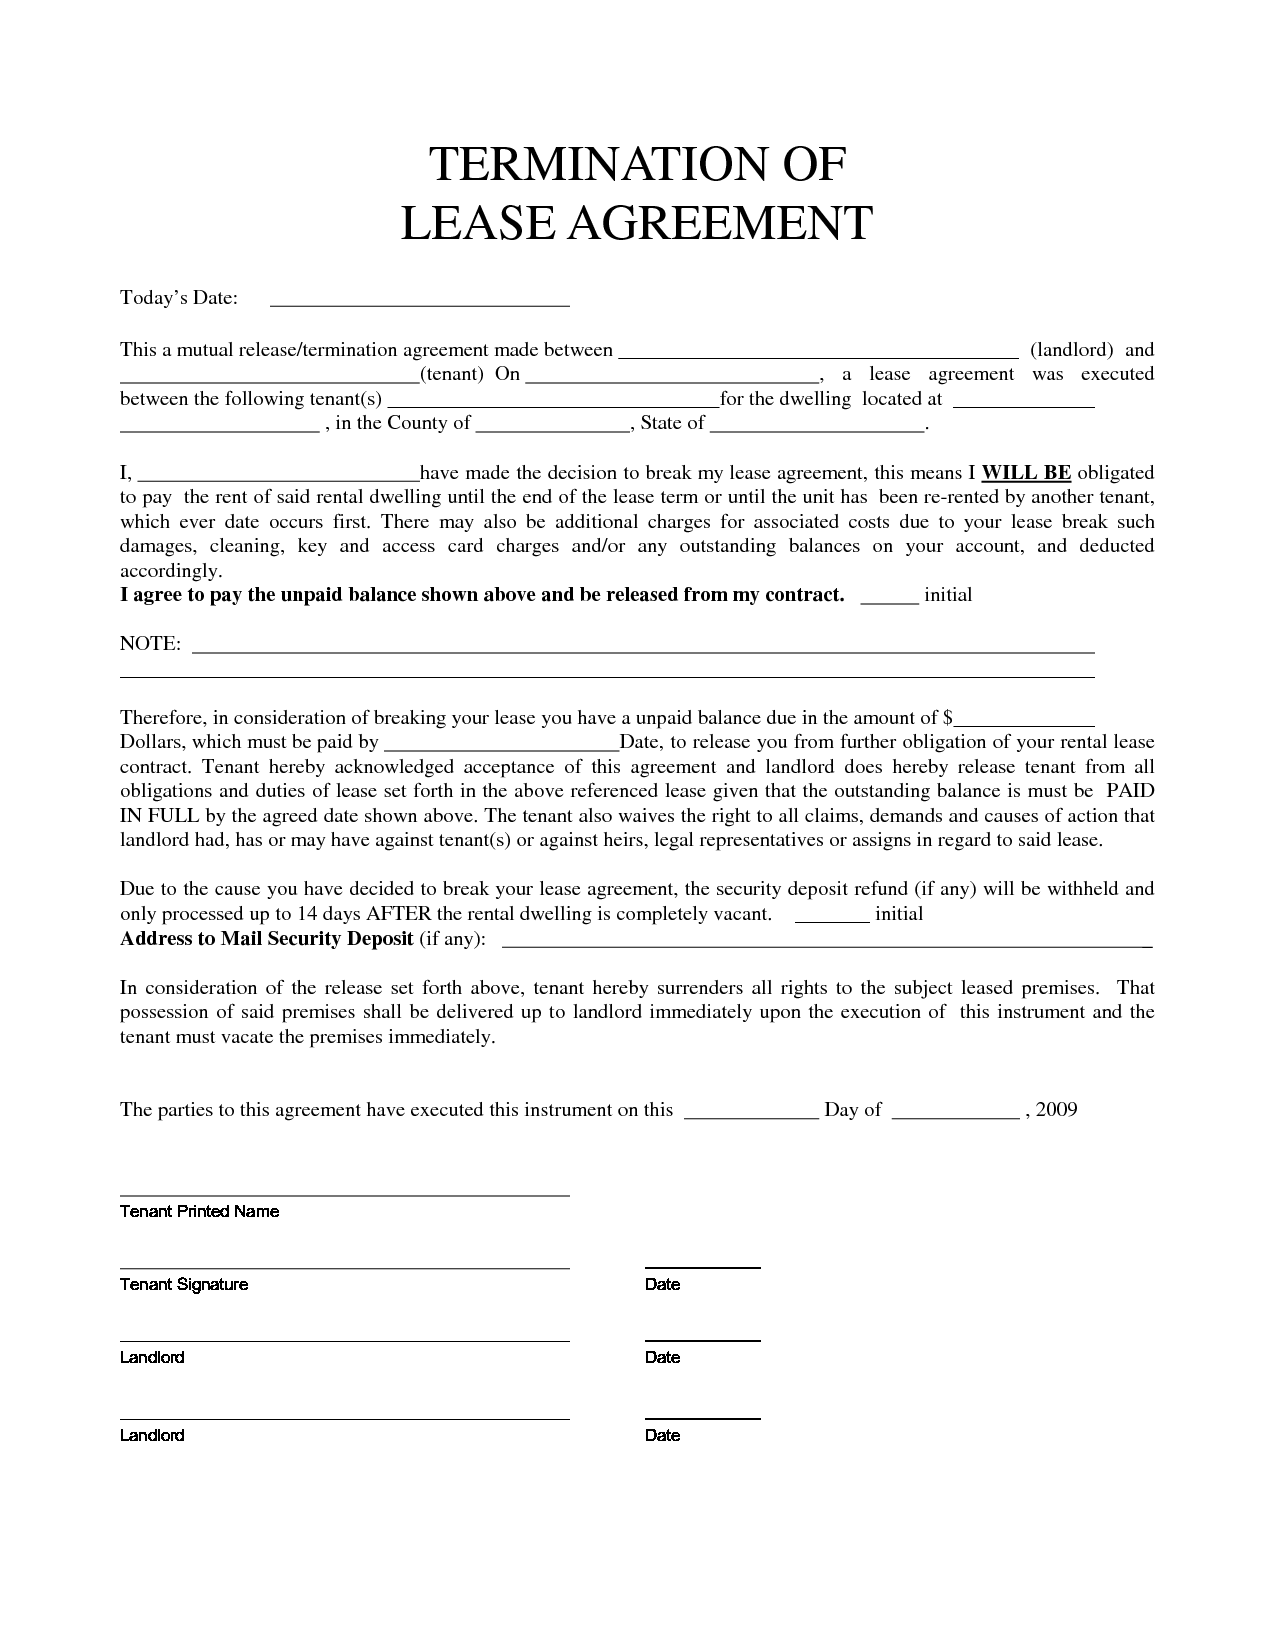 Personal Property Rental Agreement Forms – Lease Termination Letter Format